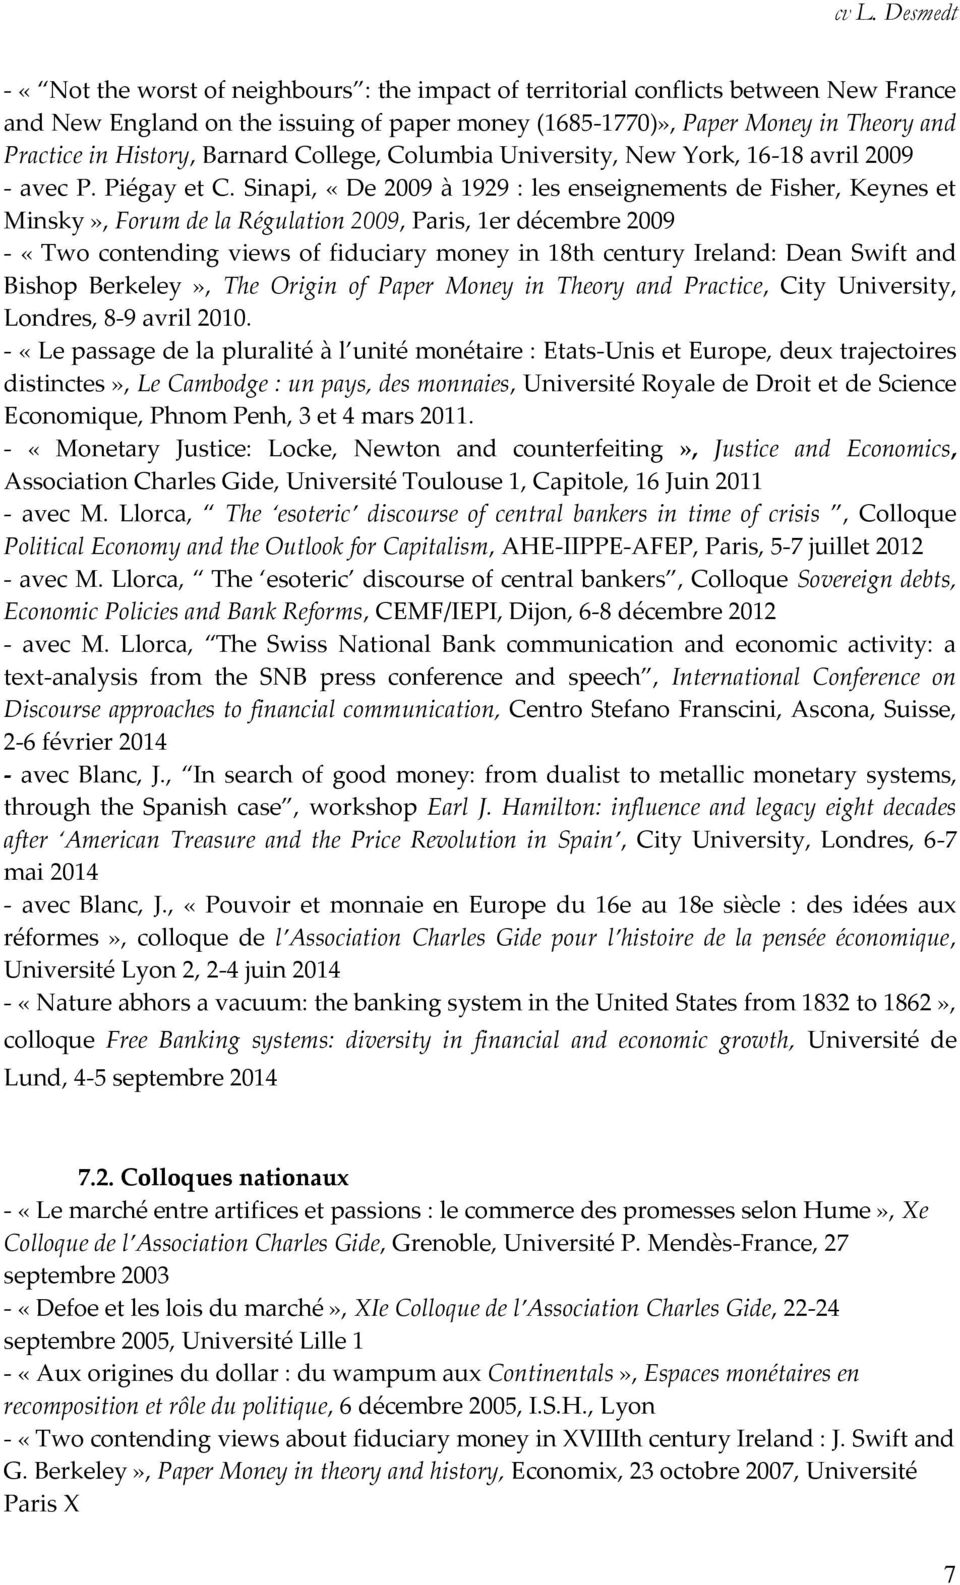 Sinapi, «De 2009 à 1929 : les enseignements de Fisher, Keynes et Minsky», Forum de la Régulation 2009, Paris, 1er décembre 2009 - «Two contending views of fiduciary money in 18th century Ireland: